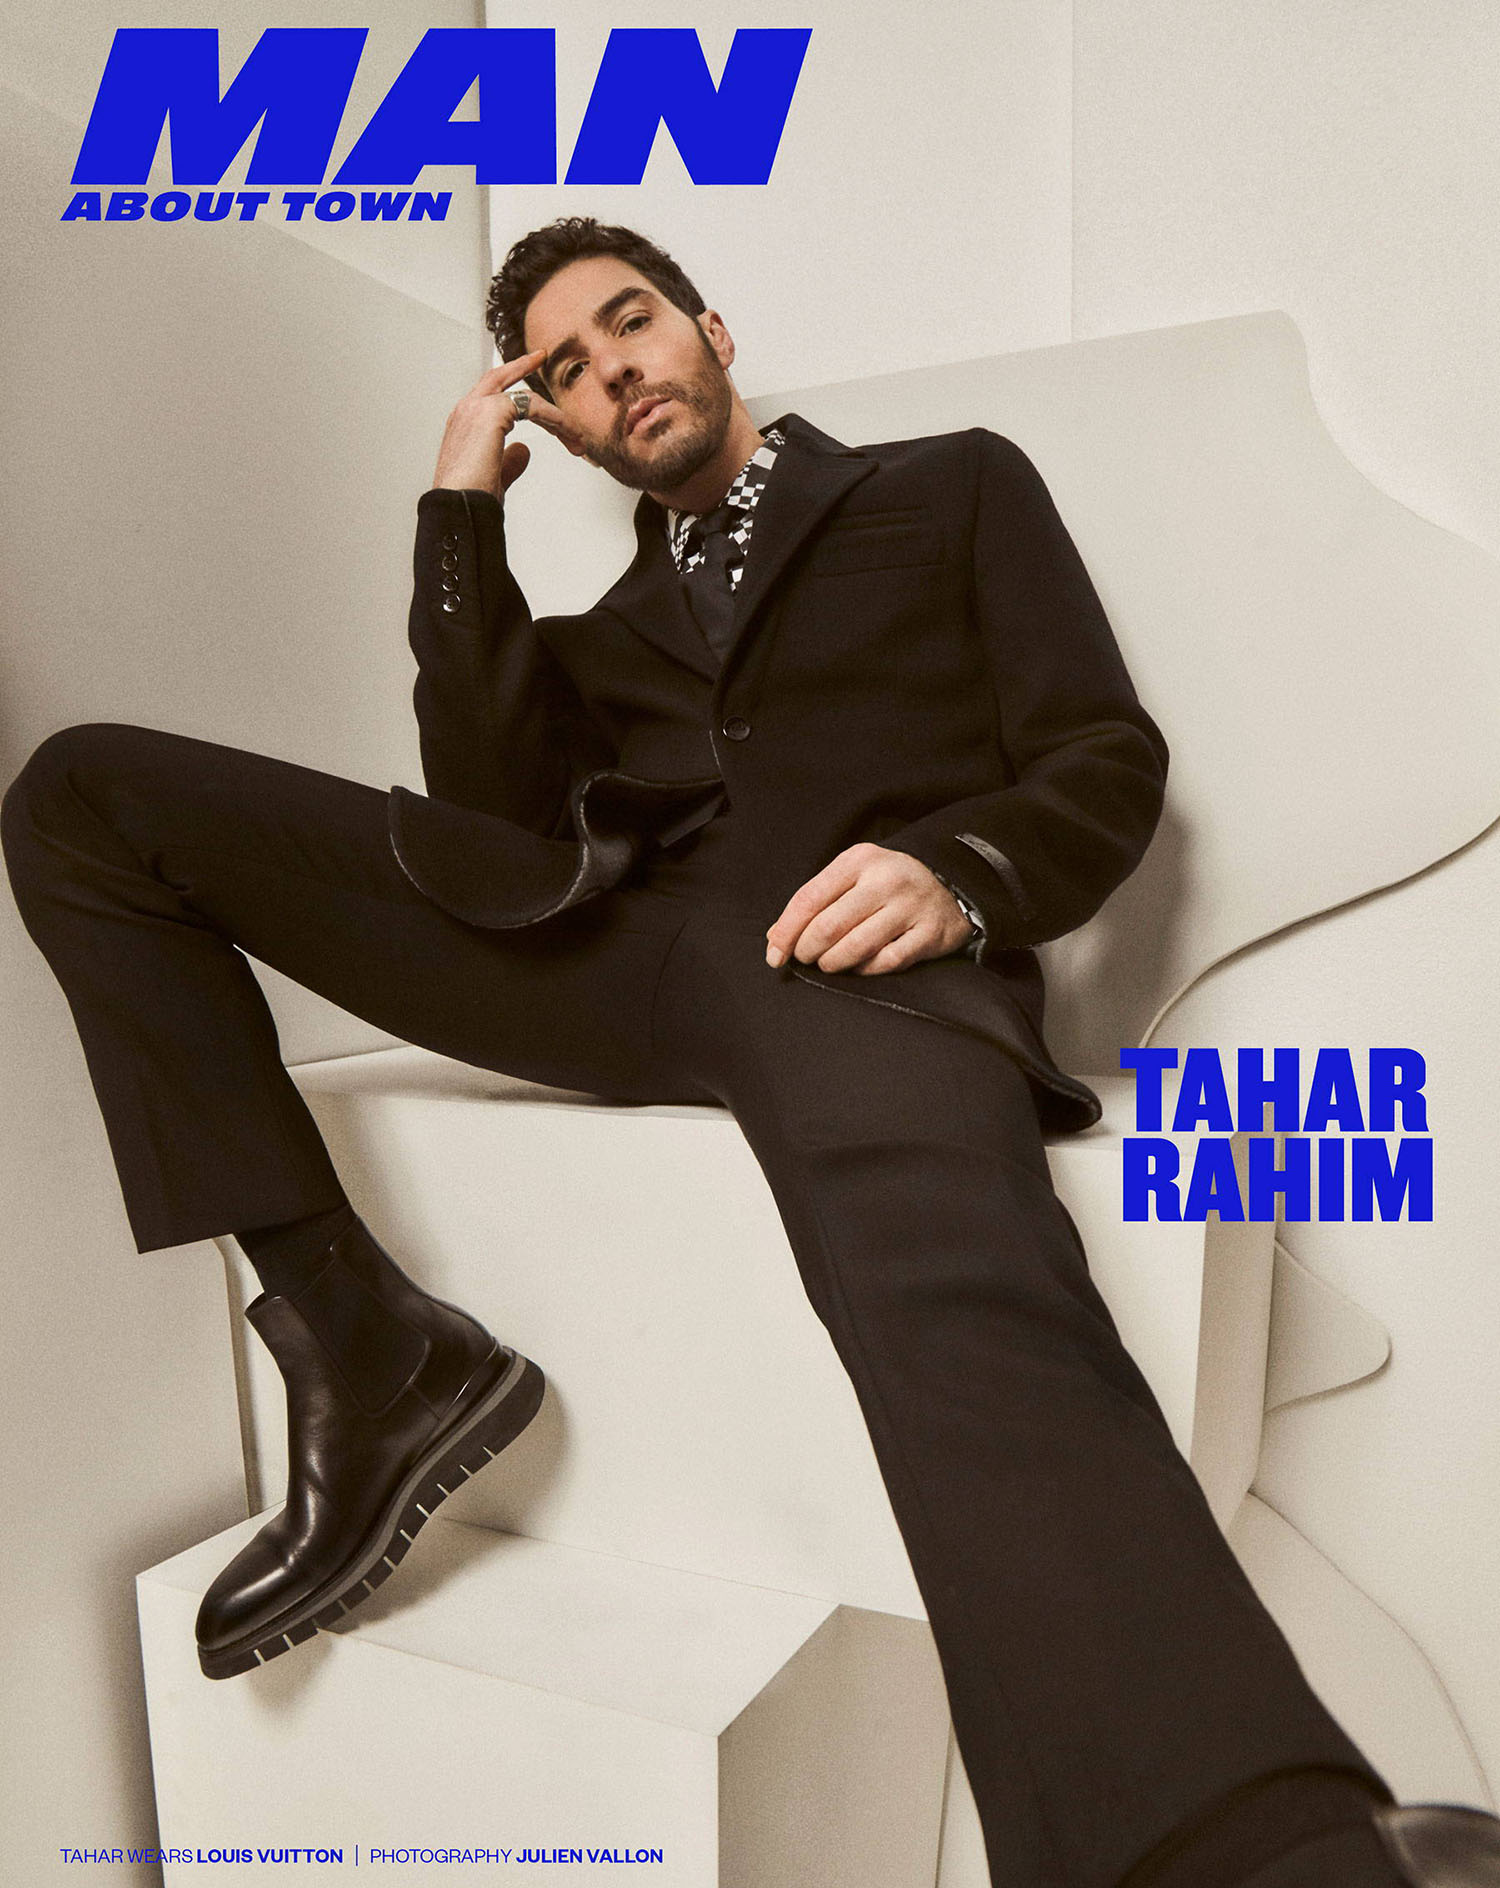 Tahar Rahim covers Man About Town Spring Summer 2021 by Julien Vallon